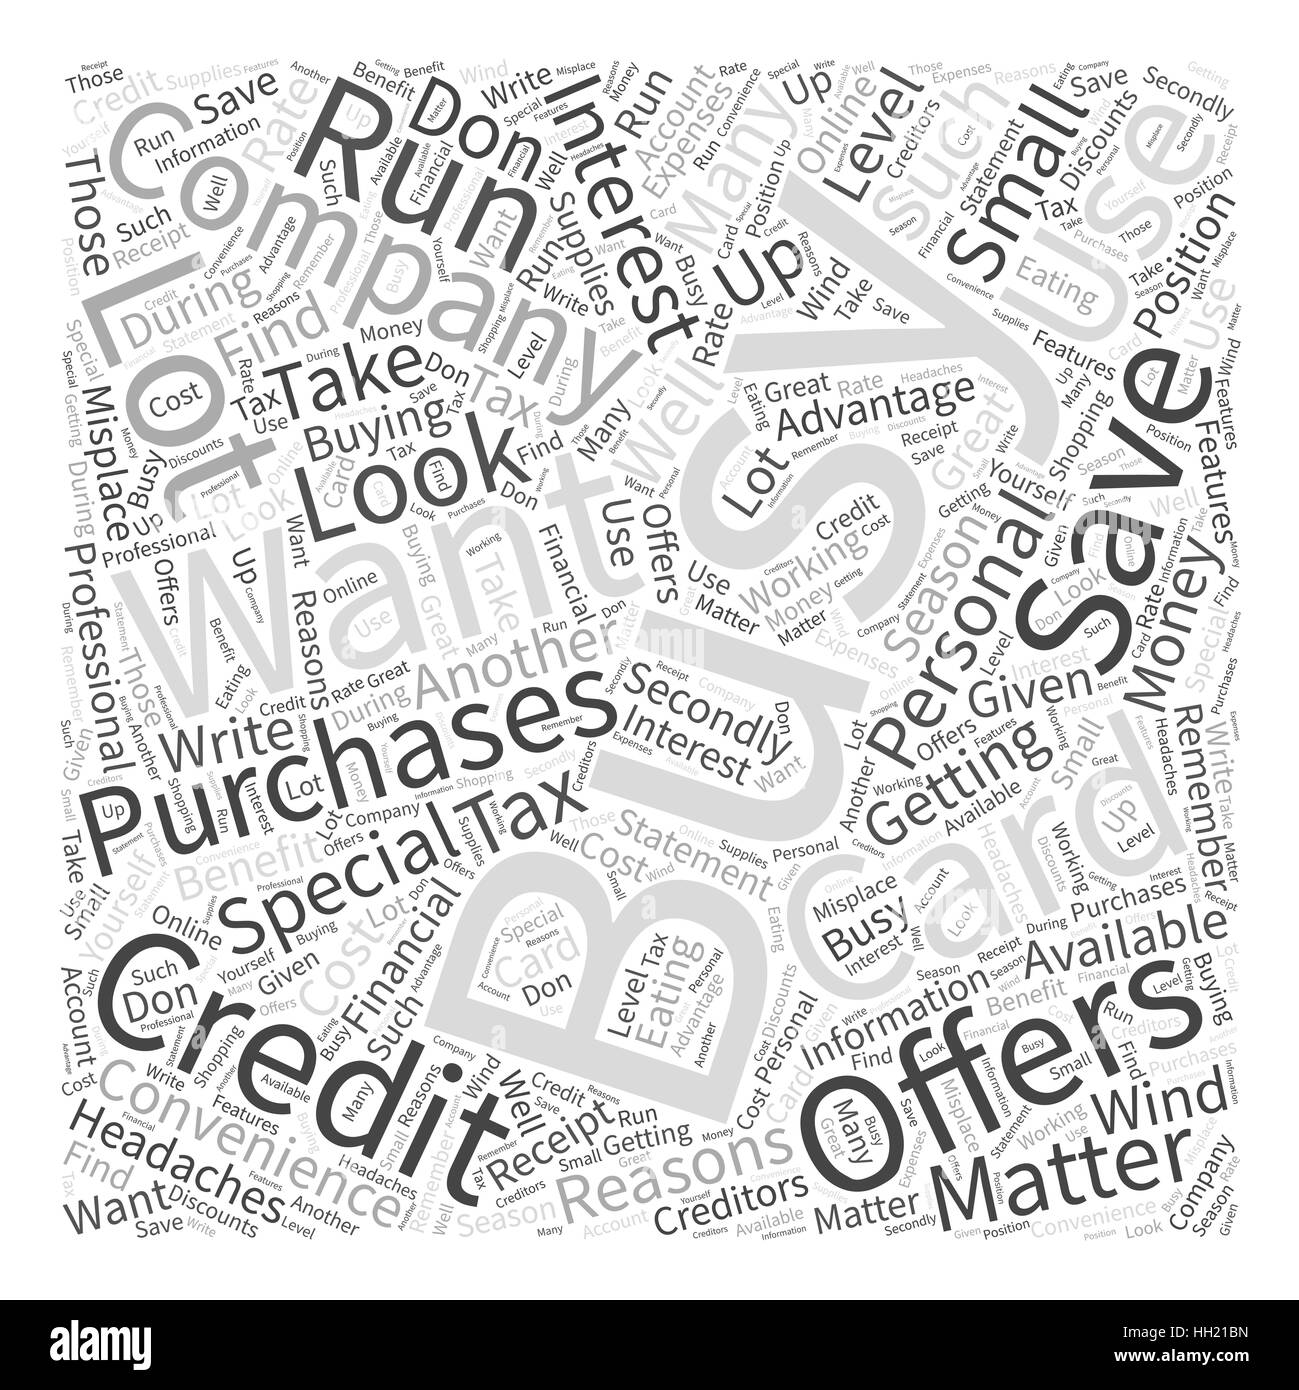 Credit card company black and white stock photos images alamy business credit card for word cloud concept stock image colourmoves